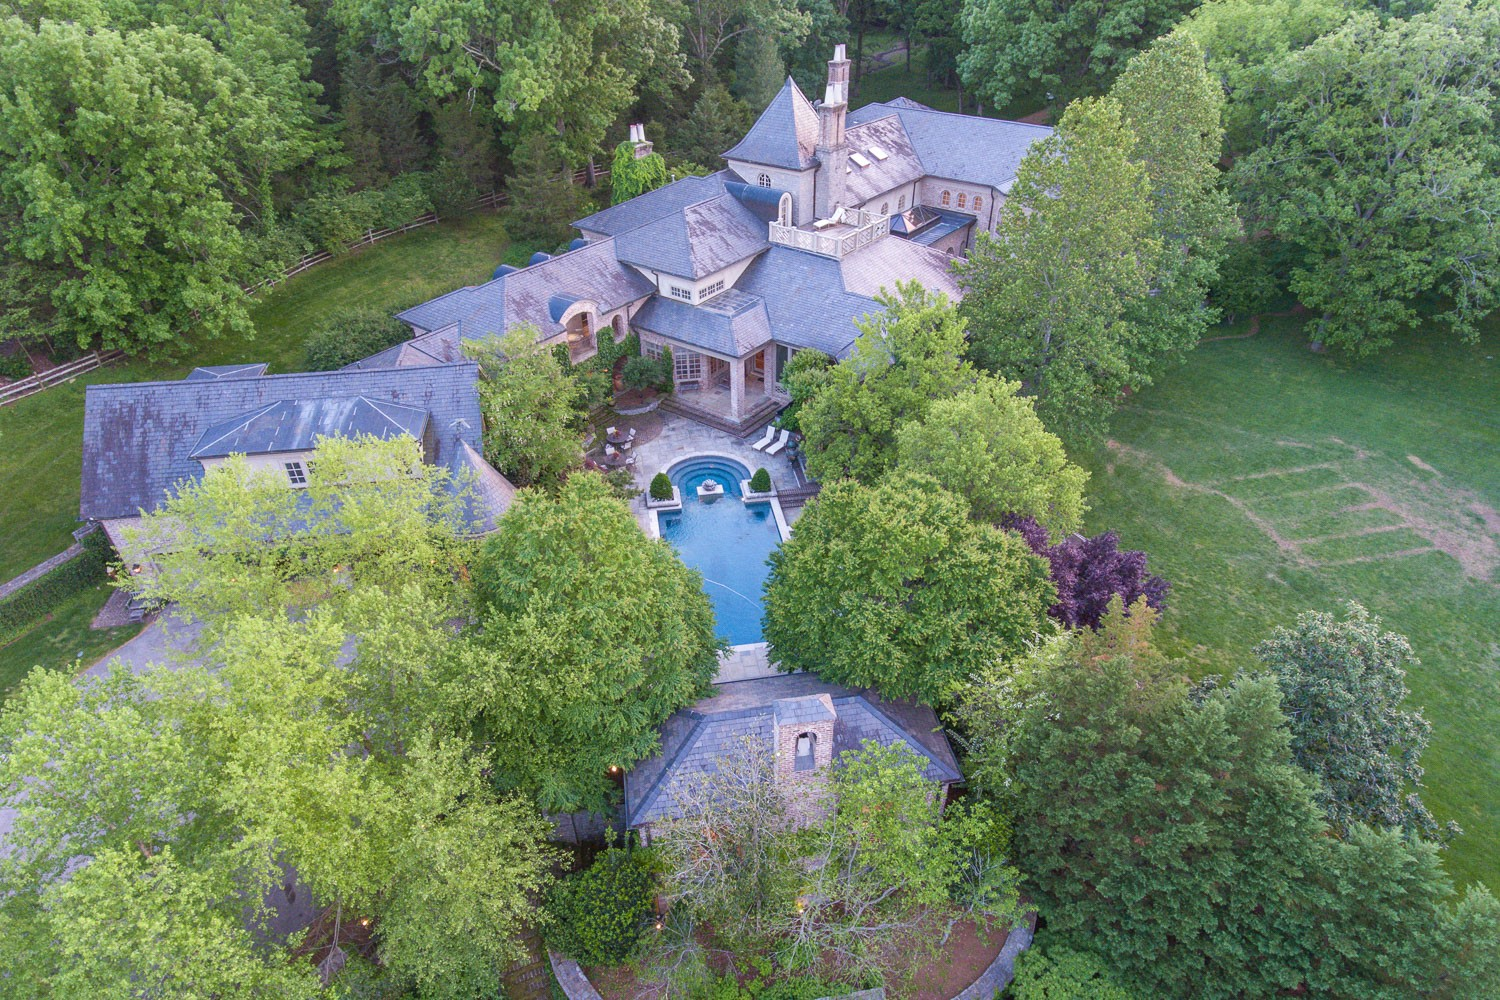 Gated 6 acre private property in the Bel-Air of TN a front porch & columns welcome you into this magnificent Villa. Huge Great room/skylit conservatory/vaulted ceilings/gourmet kitchen & family-room/make this the perfect place to house your loved ones. Master w/ his/her ba & closets. Terraces overlooking lush grounds. 6+ bdrs en-suite/media room/3 den areas & 6 fprs/3k bottle wine cellar/billiard room/bar & room for music studio. Pool/pool house/sun porch/horse stable/pond. pageroadestate.com